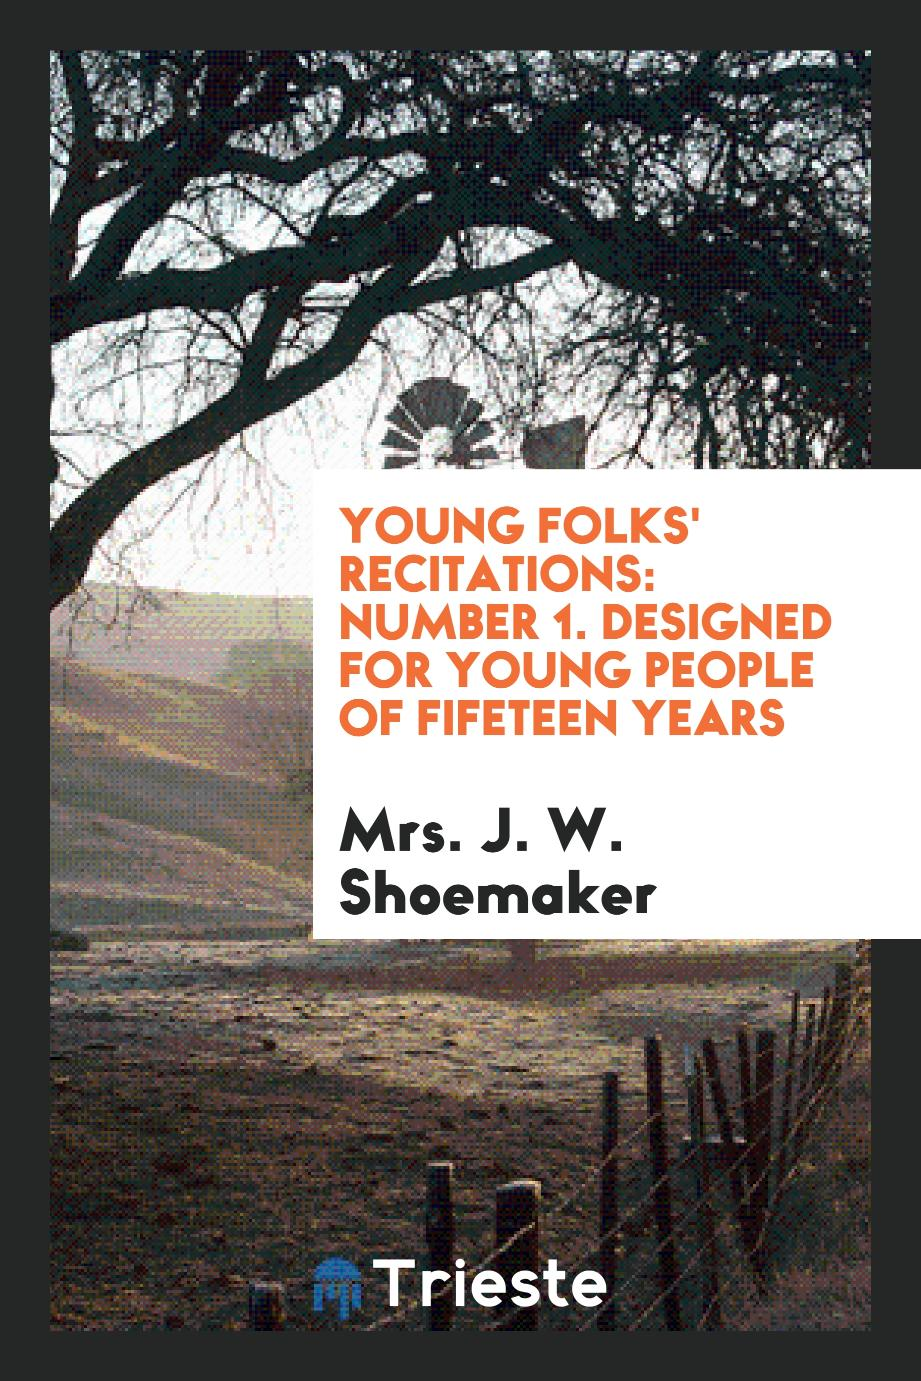 Young Folks' Recitations: Number 1. Designed for Young People of Fifeteen Years